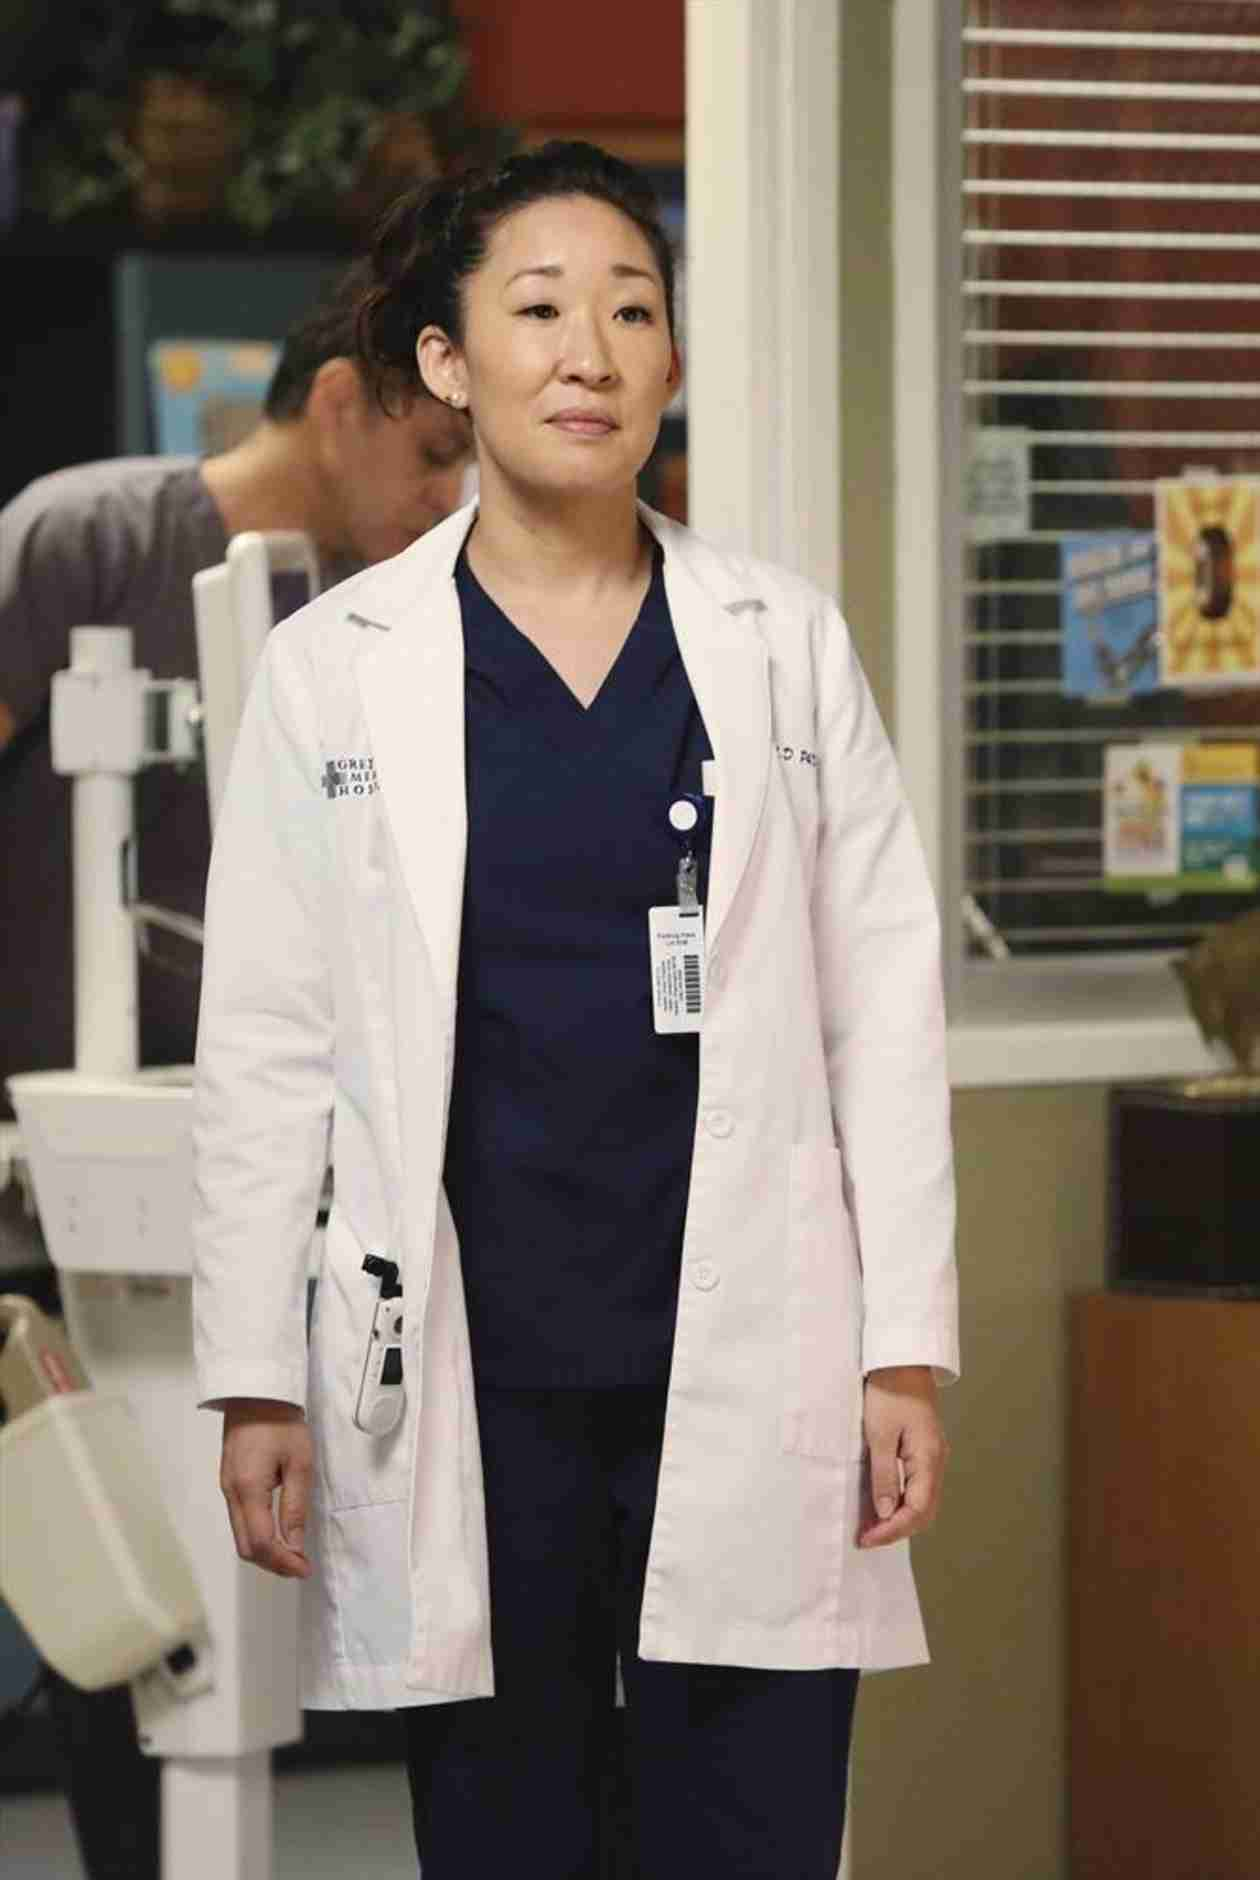 Grey's Anatomy Season 10 Finale Spoilers: 4 Things We Learn From the Promo (VIDEO)